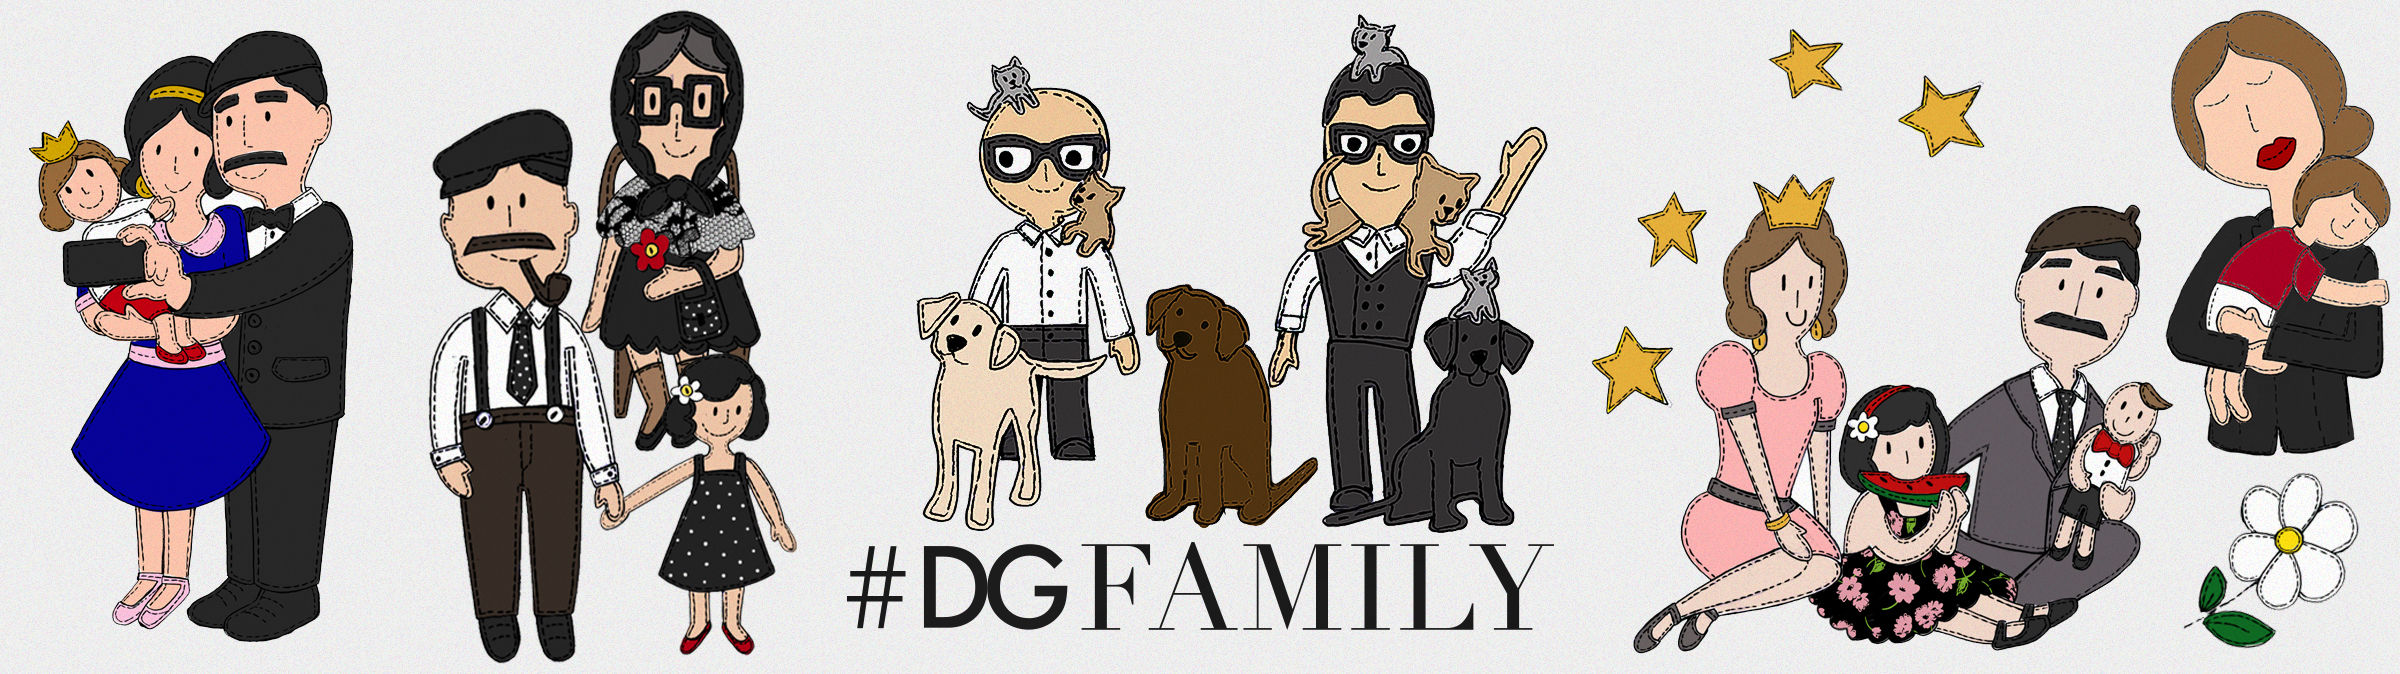 dolce-and-gabbana-dg-fall-winter-2016-2017-collection-woman-man-apparel-accessories-dgfamily-shop-online-store-2400x672-1